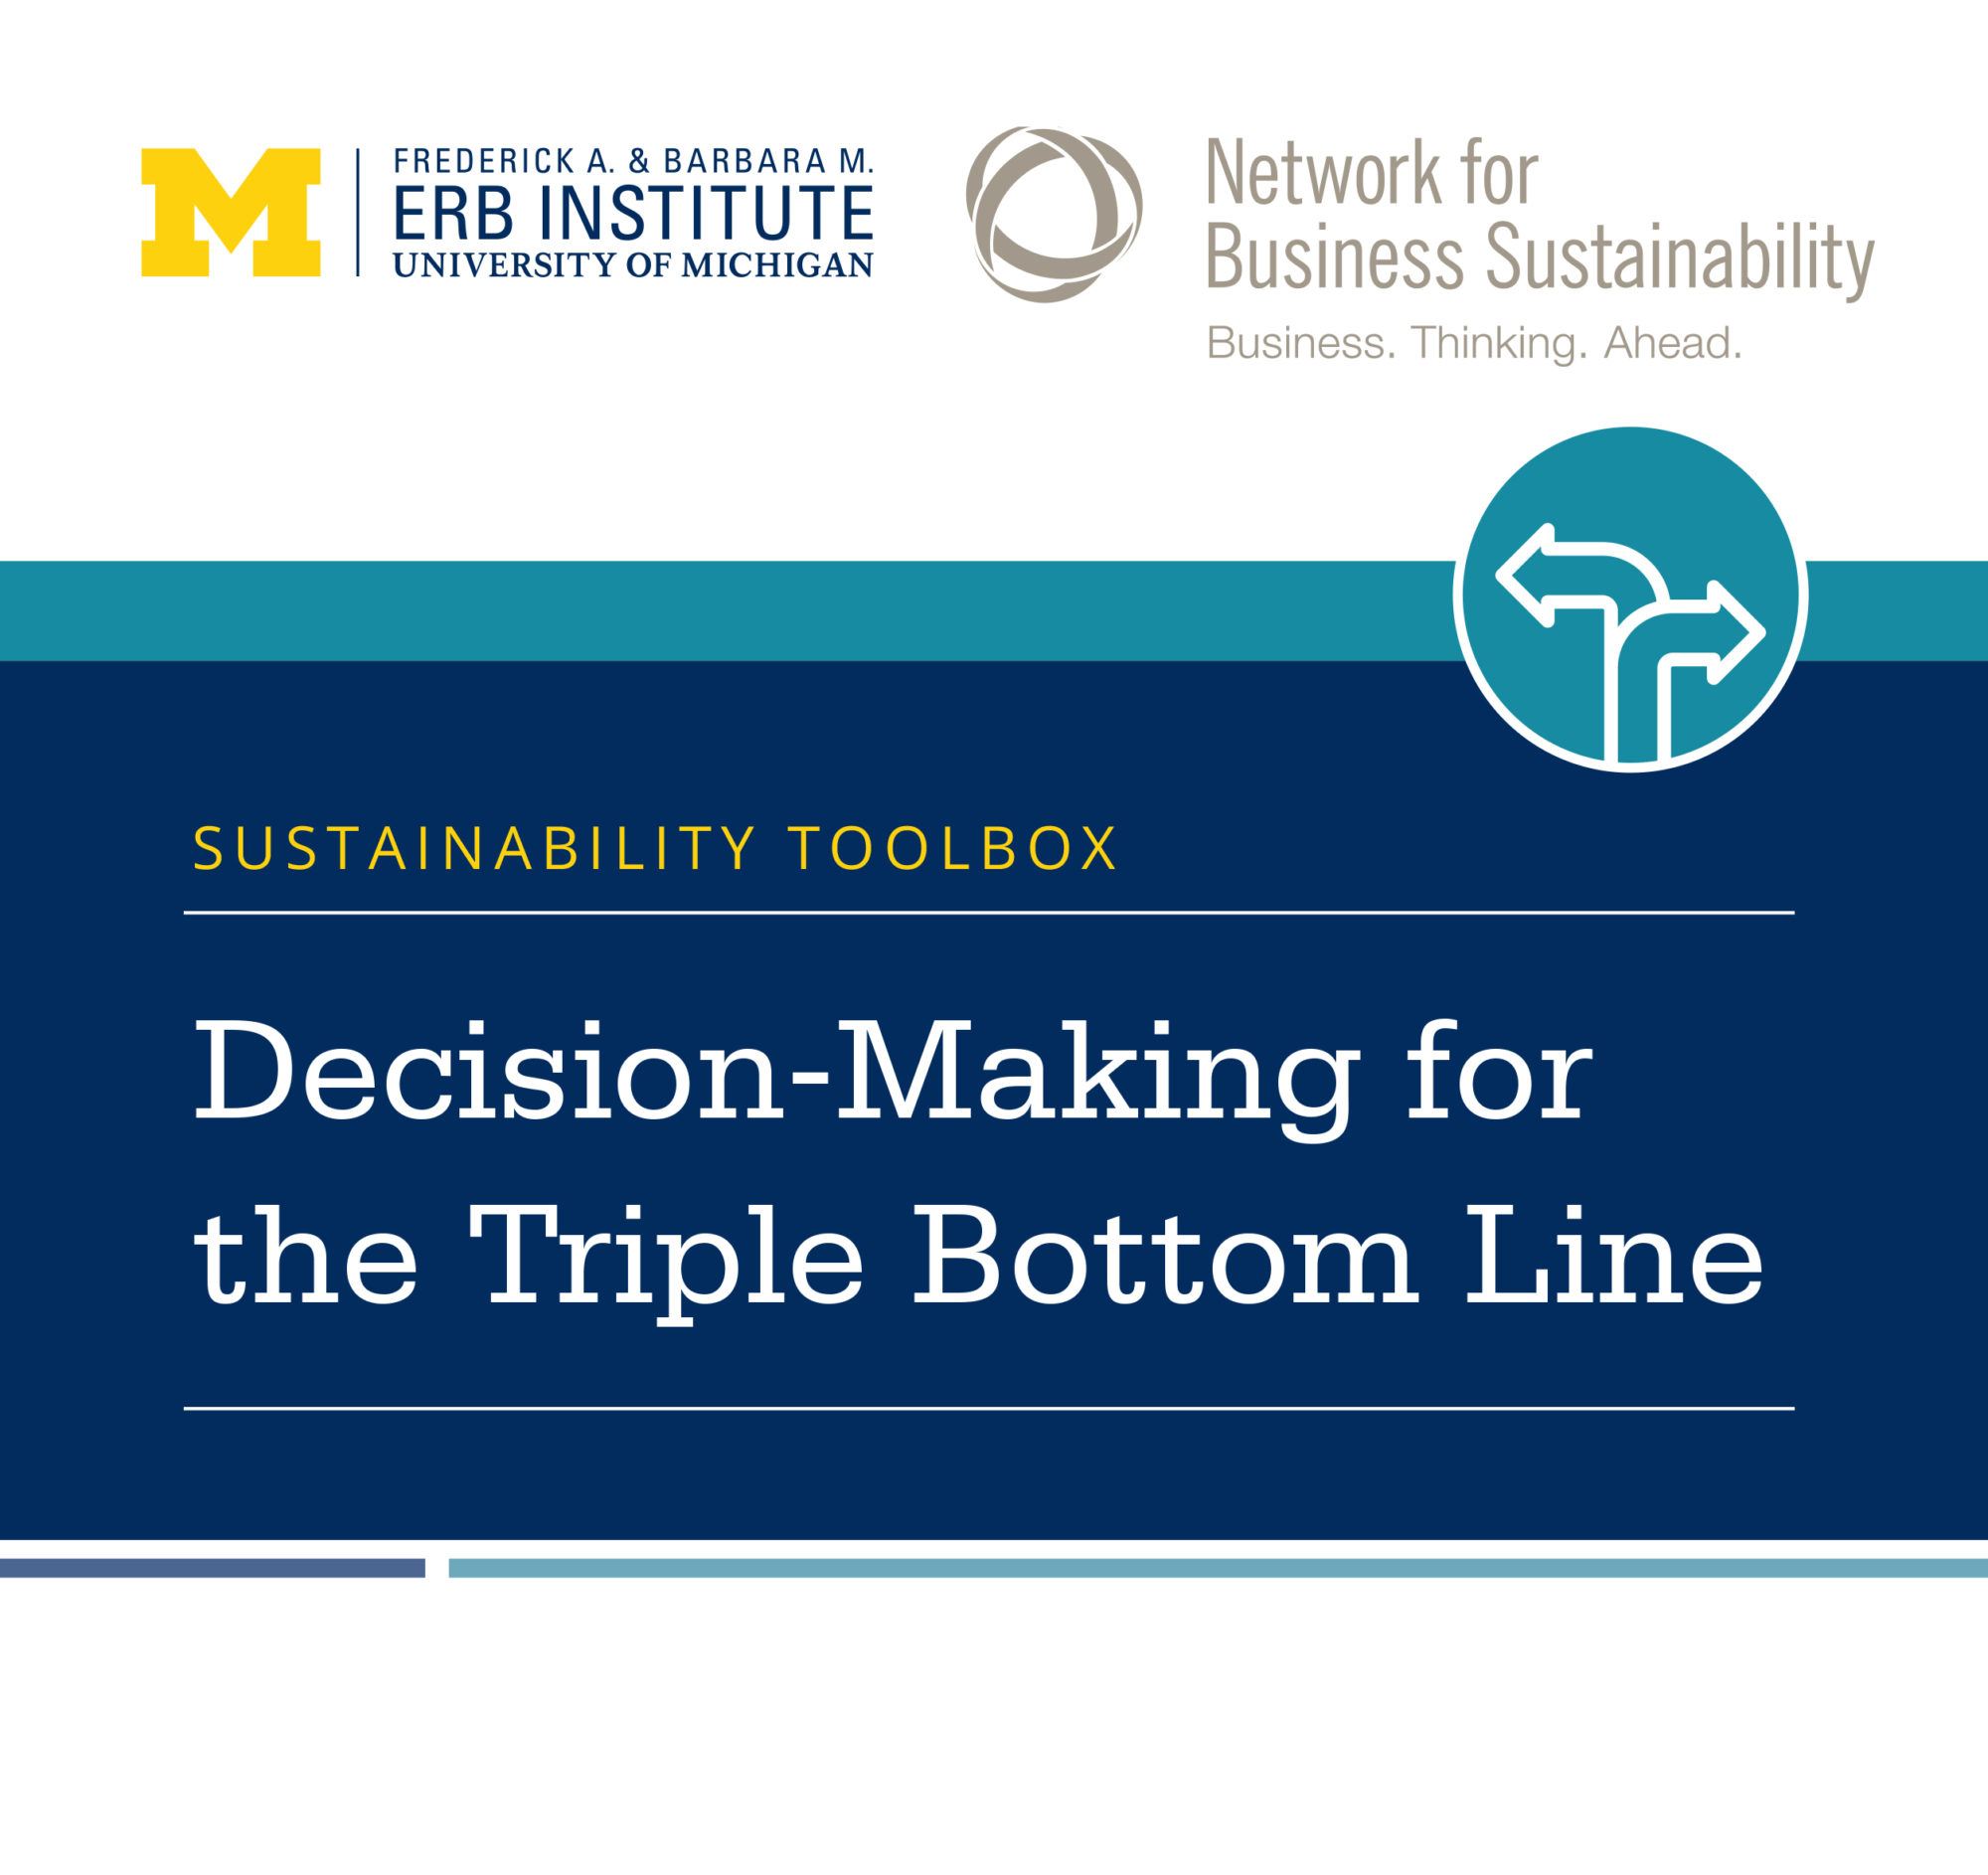 Sustainability Toolbox: Decision-Making for the Triple Bottom Line